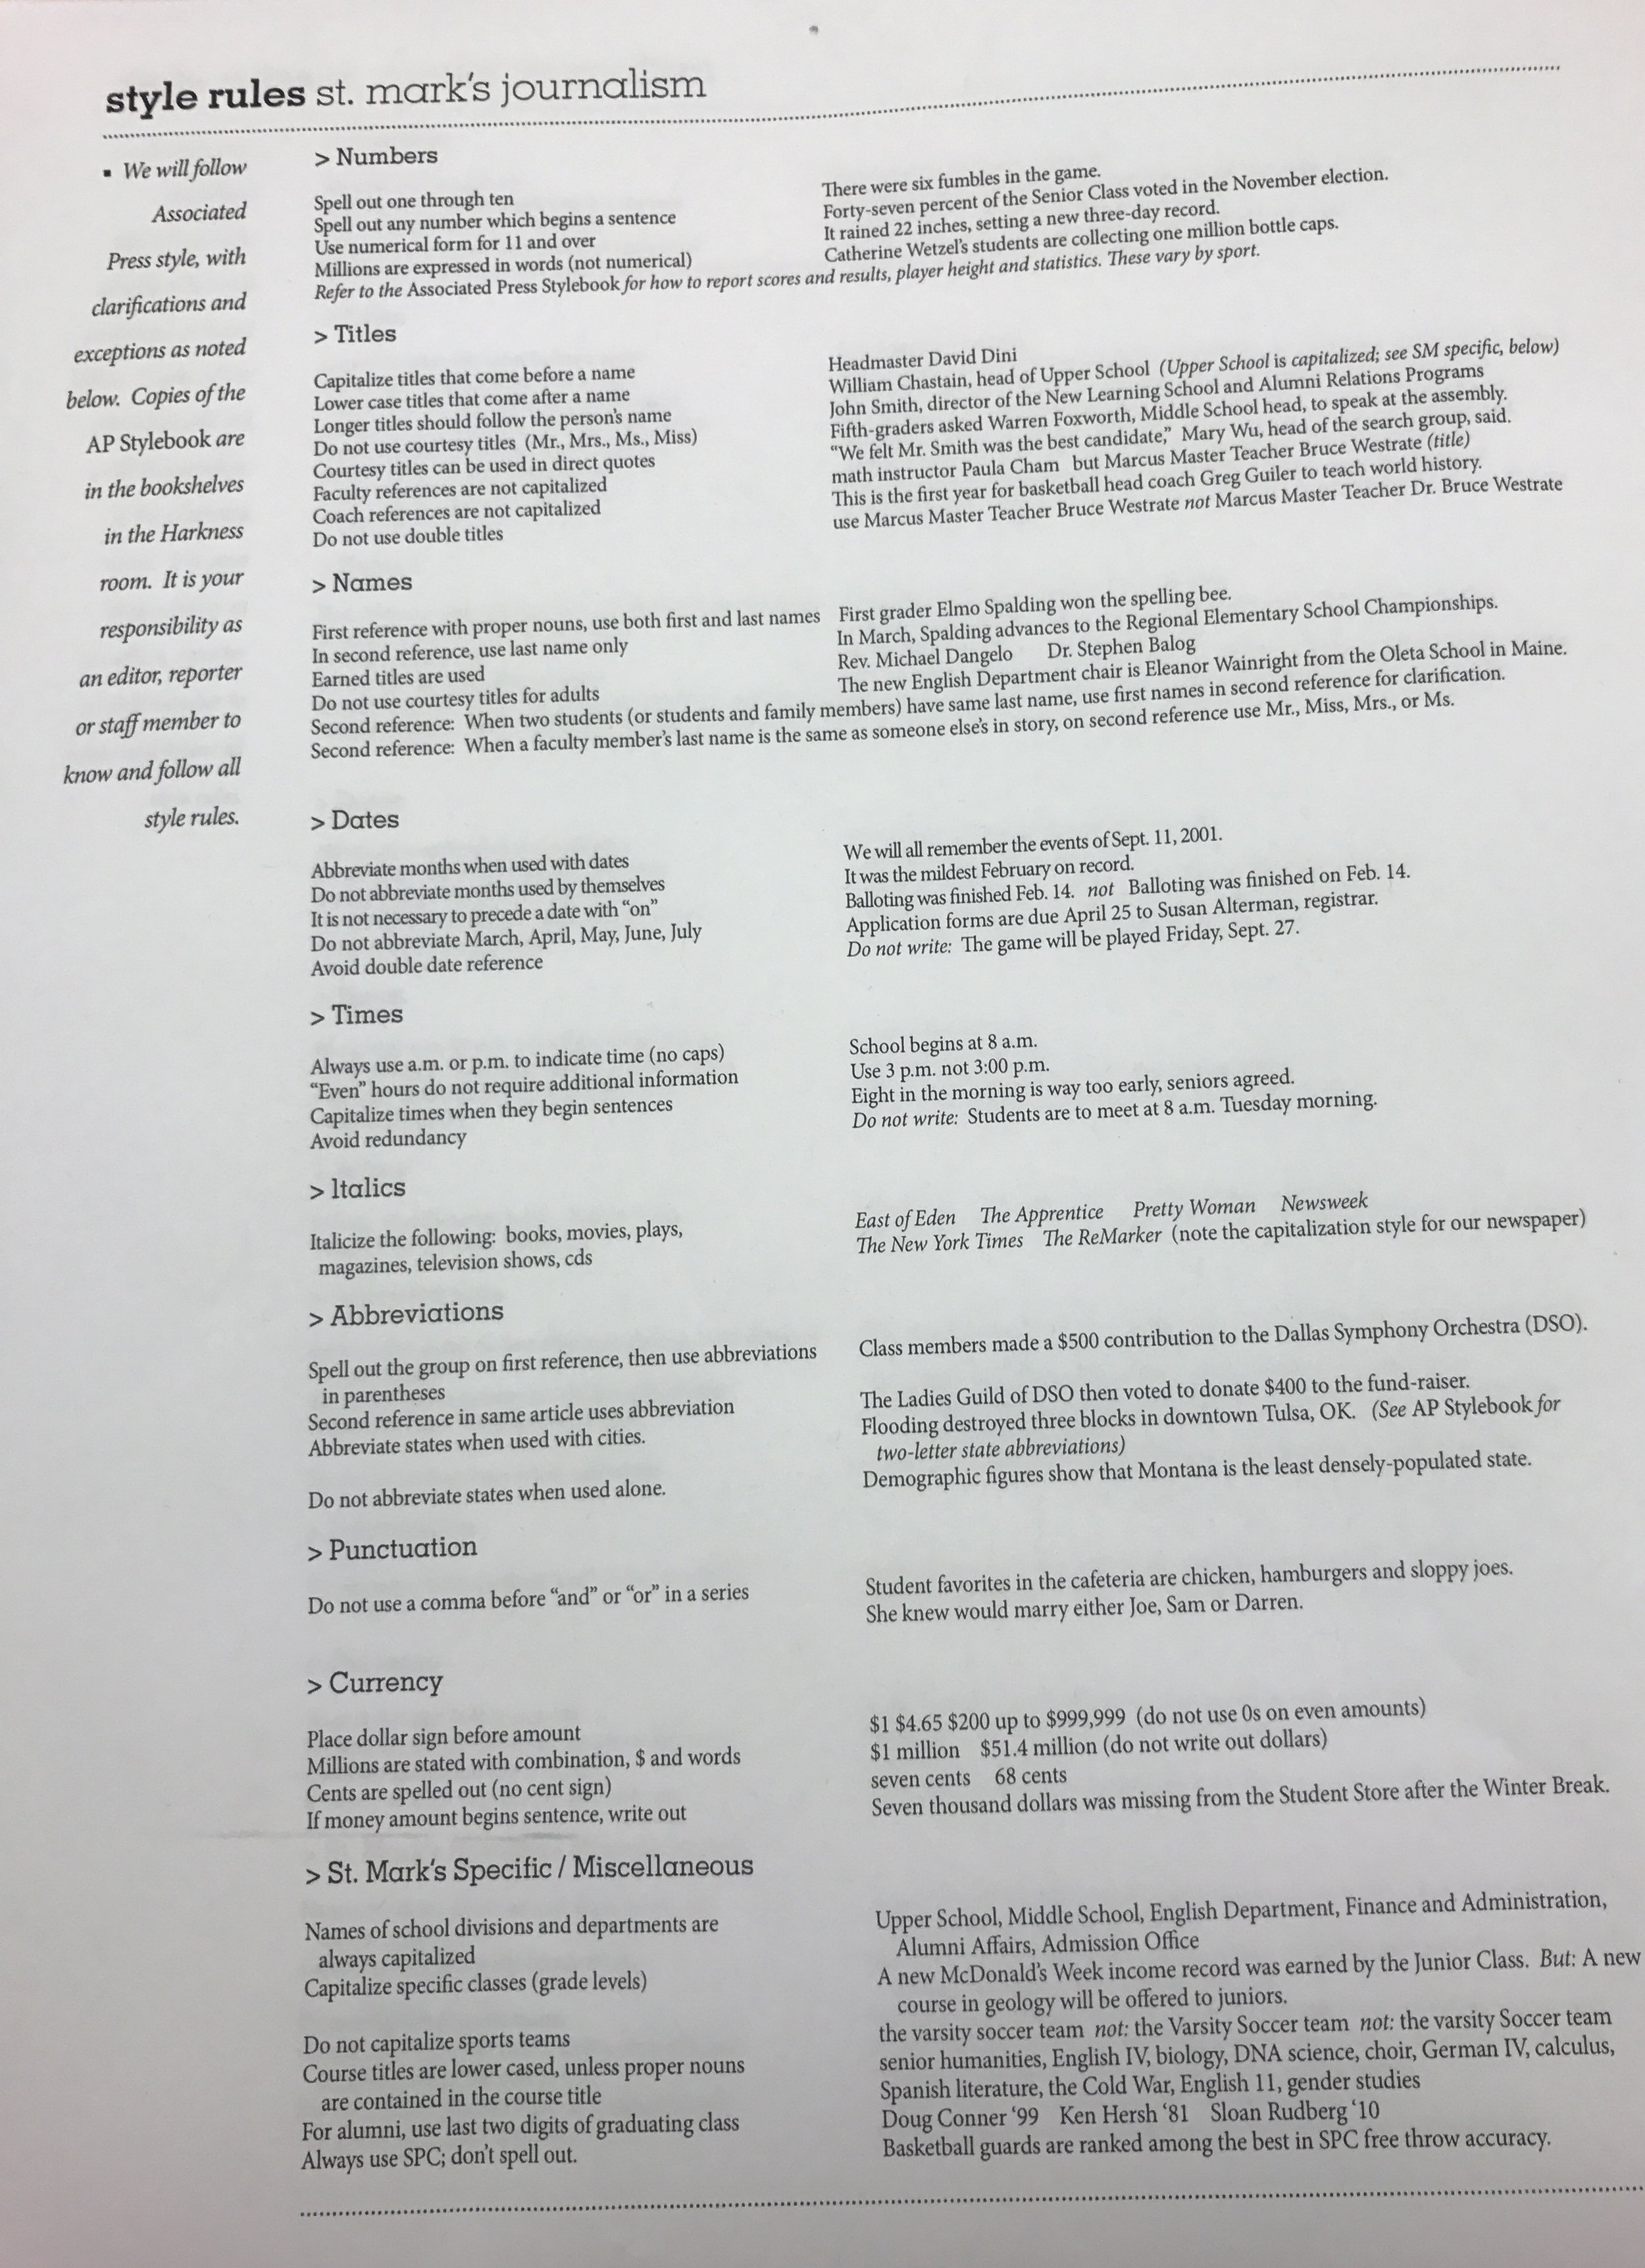 For specific categories that often pop up when writing stories, we follow the St. Mark's style rules sheet. It contains everything from how to indicate currency to specific, administrative titles.